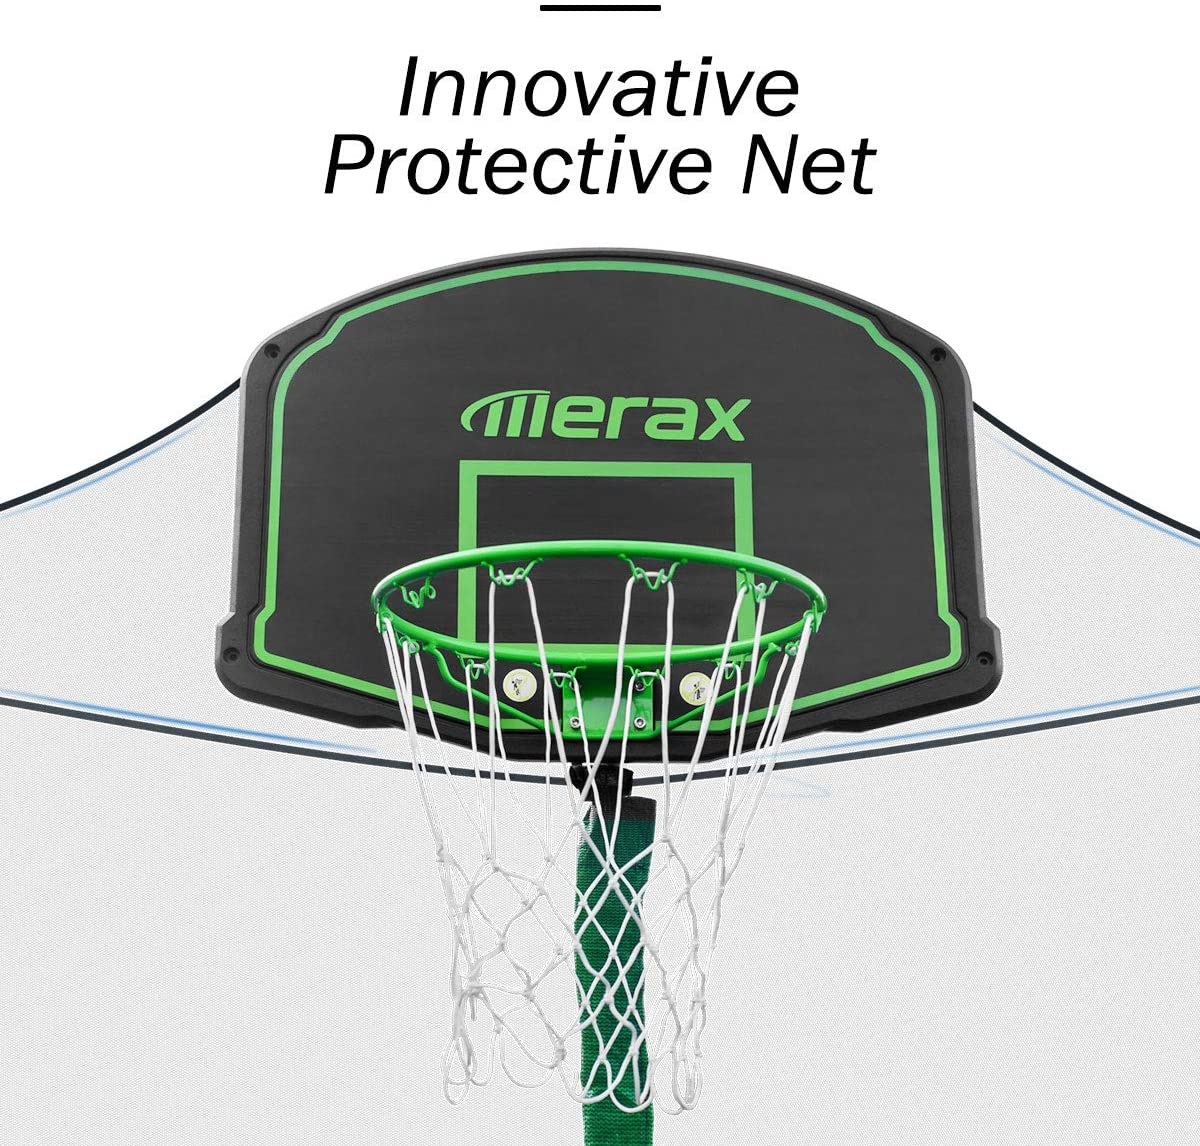 This is an image of Merax 14 FT Round Trampoline with Safety with the innovative protective net.